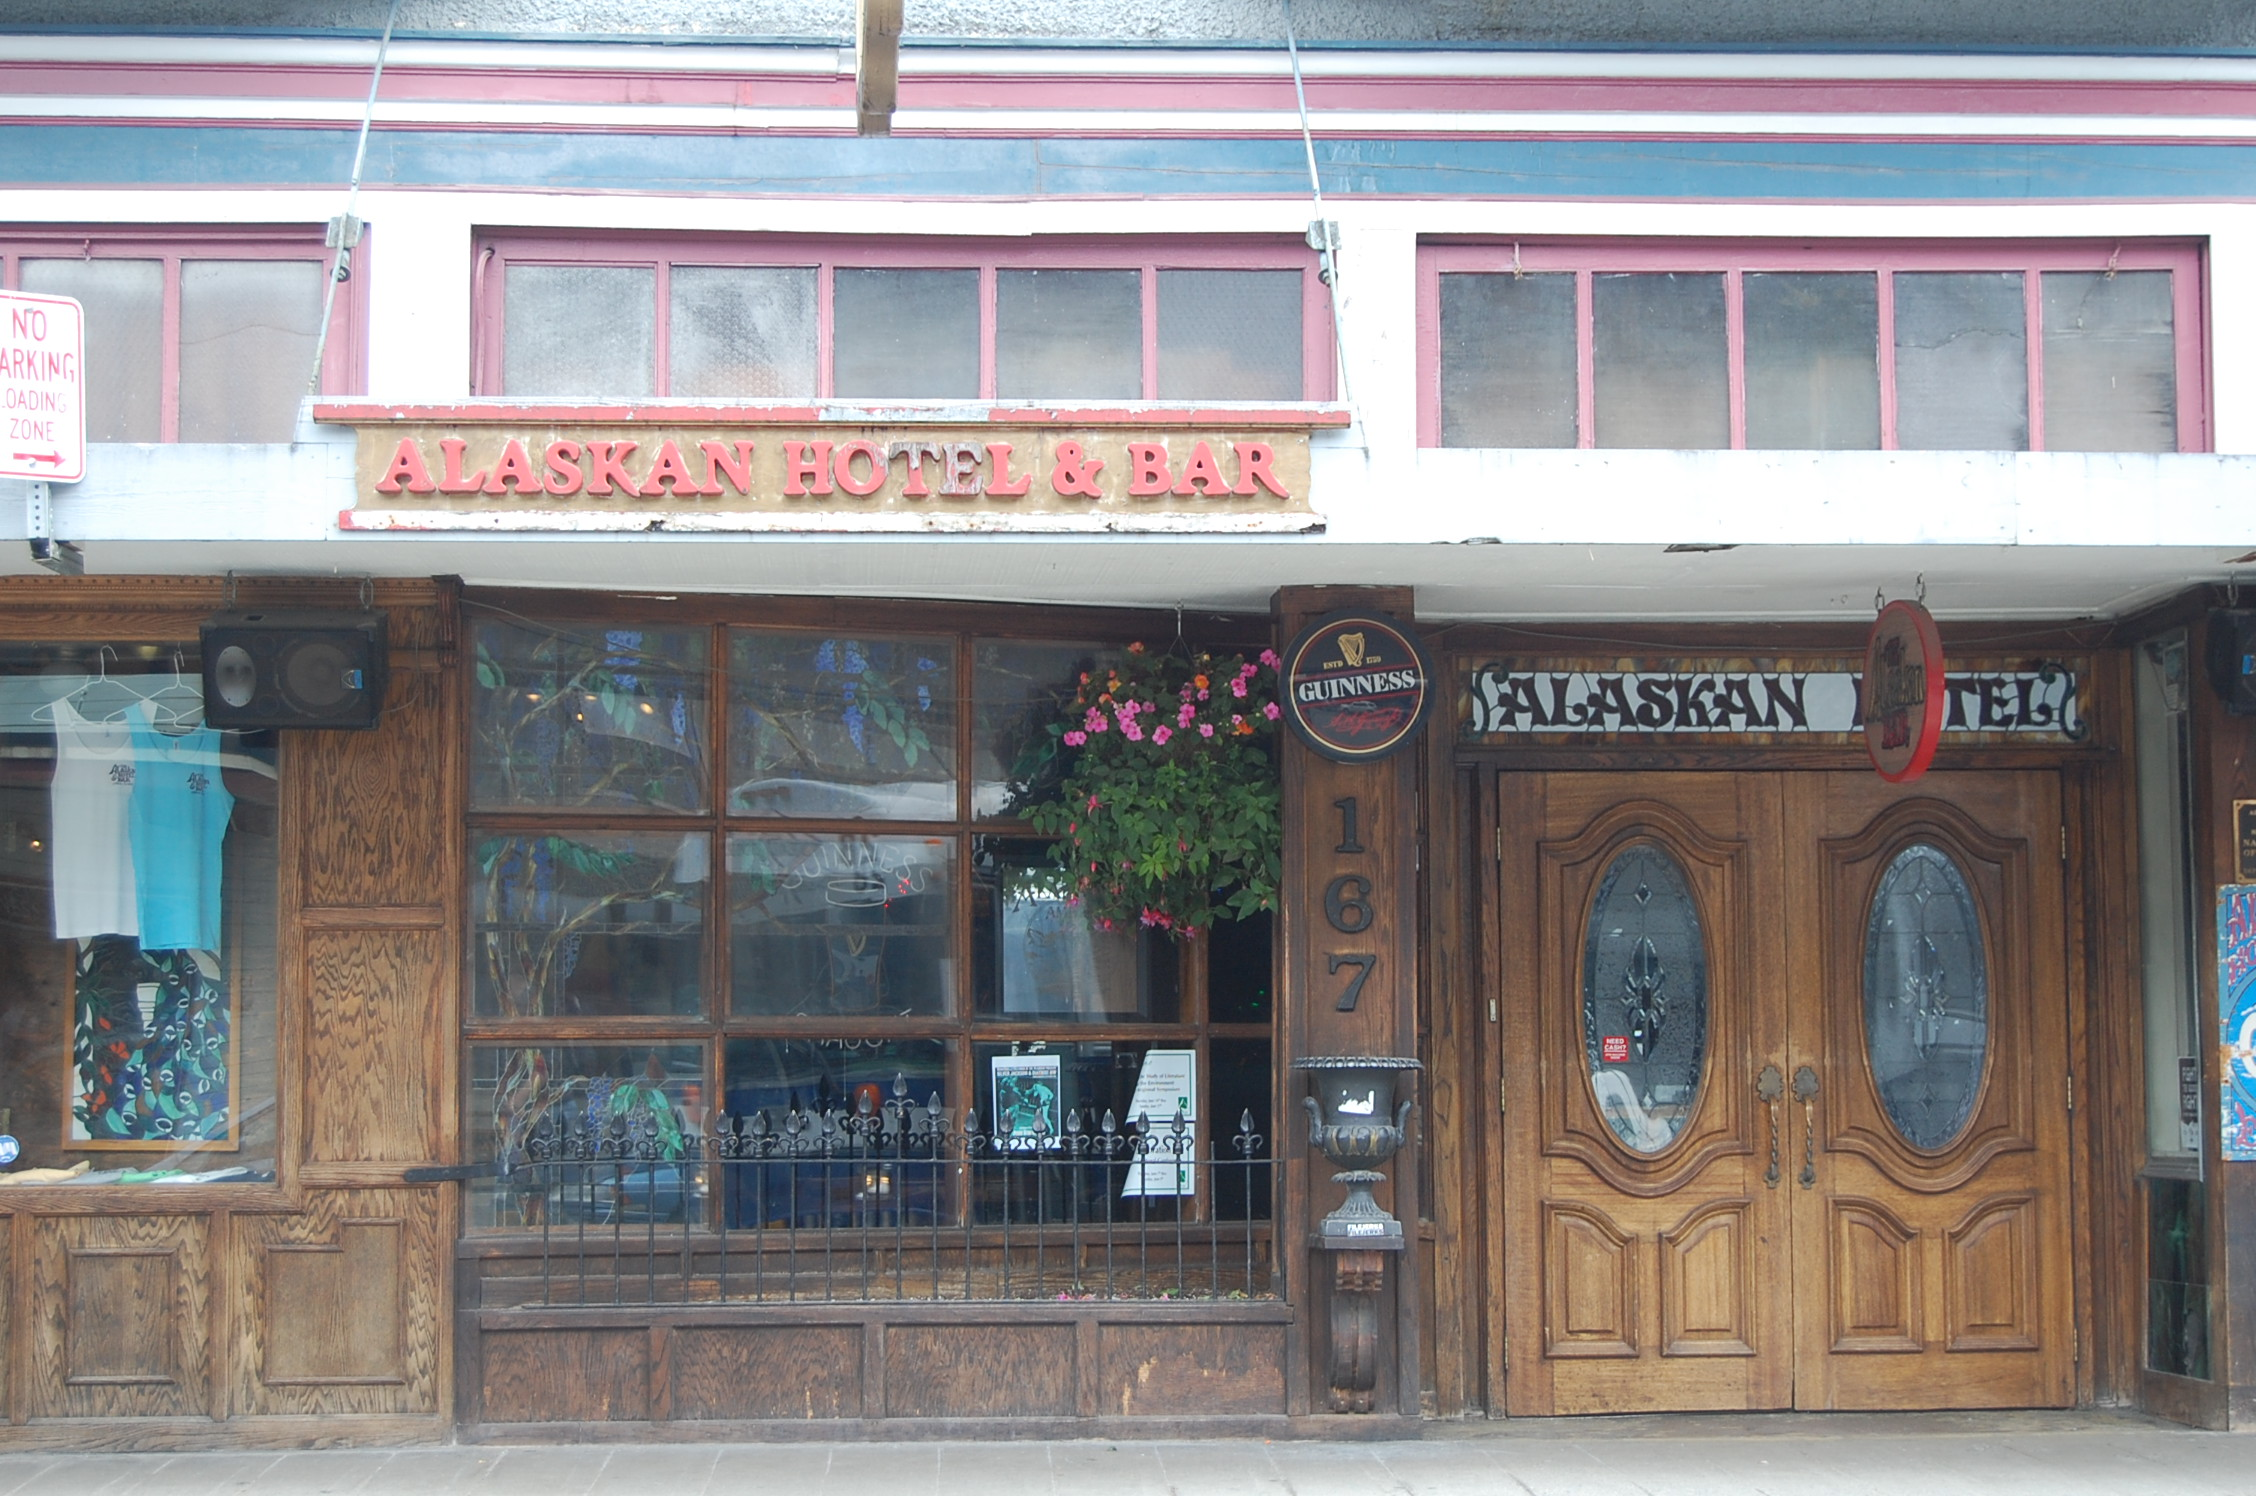 The Best Dive Bar In Alaska... The Alaskan